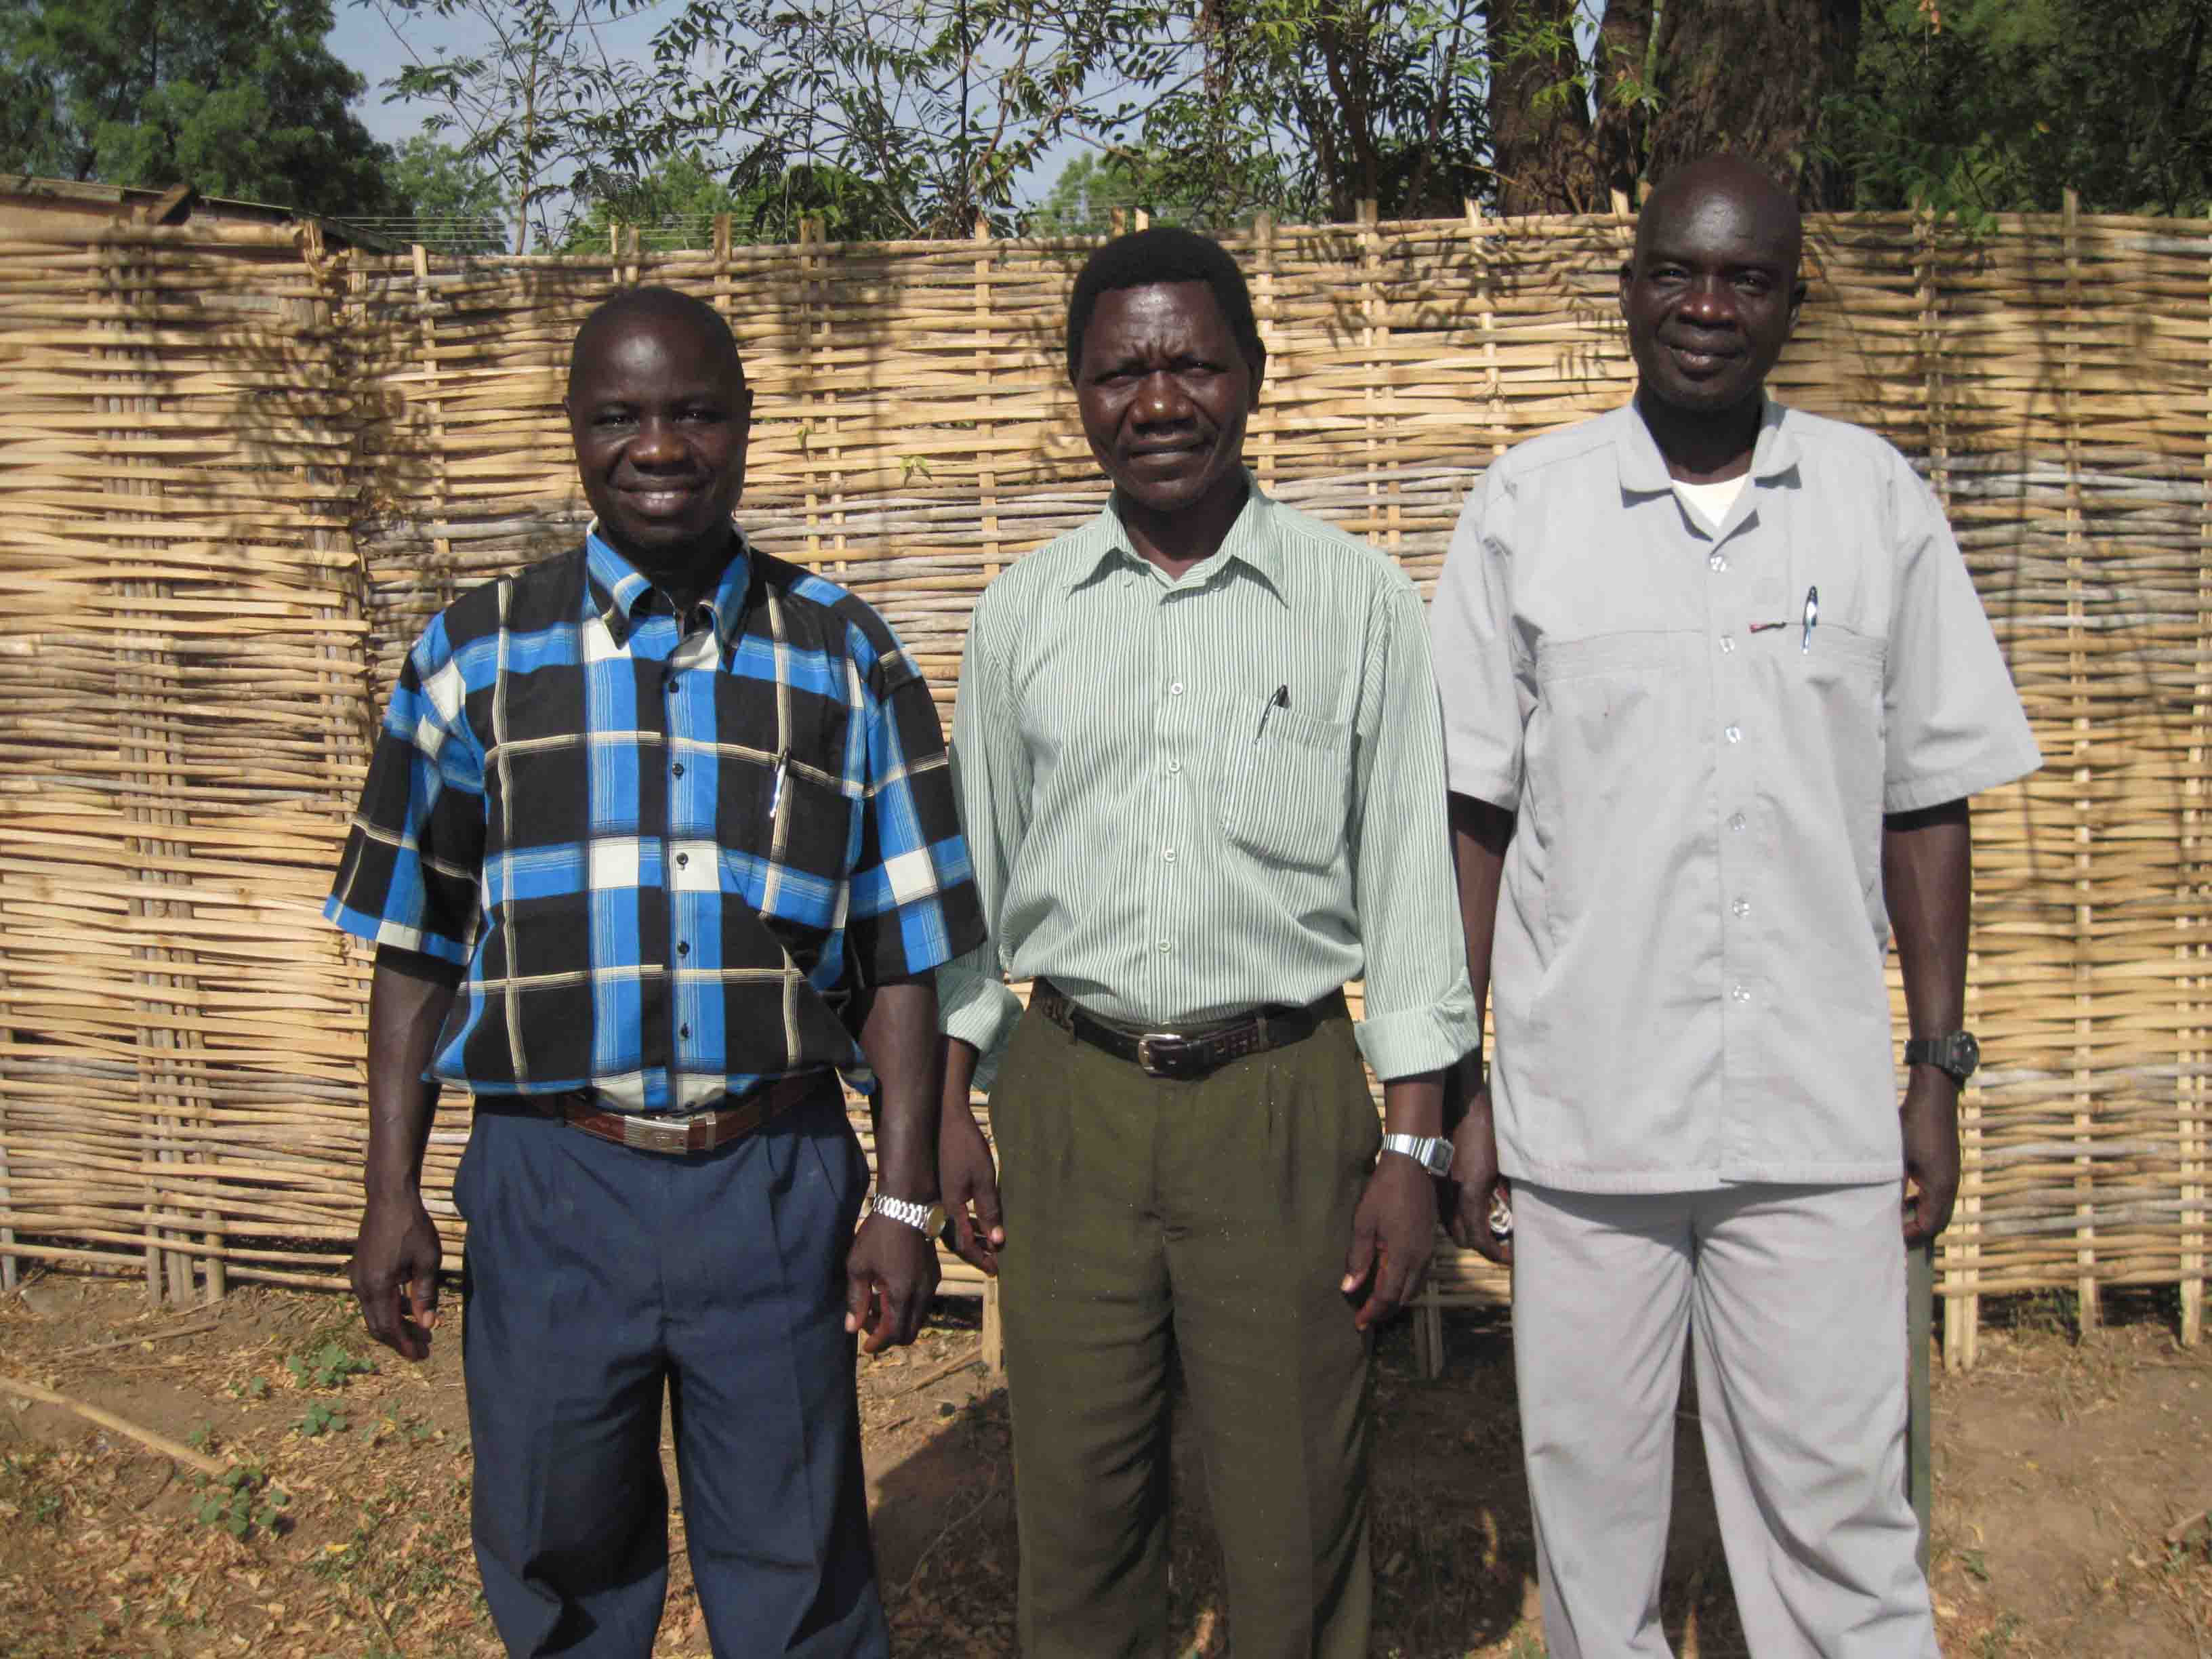 2010: Translators Ezekiah Dada, Enos Dada and Isaac Kenyi working in Juba, South Sudan.